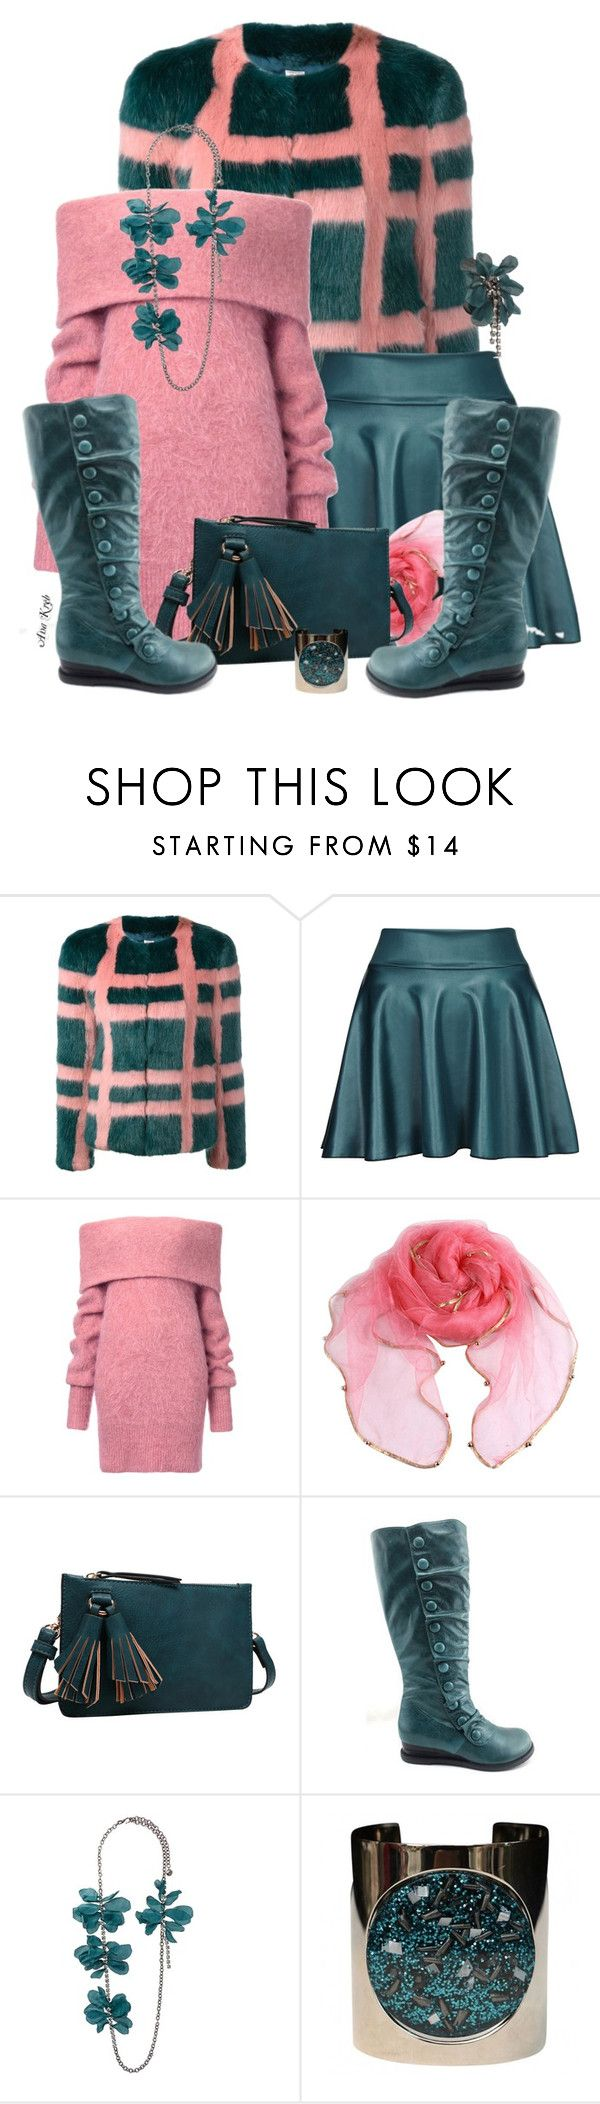 """""""Pan symphony"""" by ana-kreb ❤ liked on Polyvore featuring Shrimps, Melie Bianco, Miz Mooz and Lanvin"""